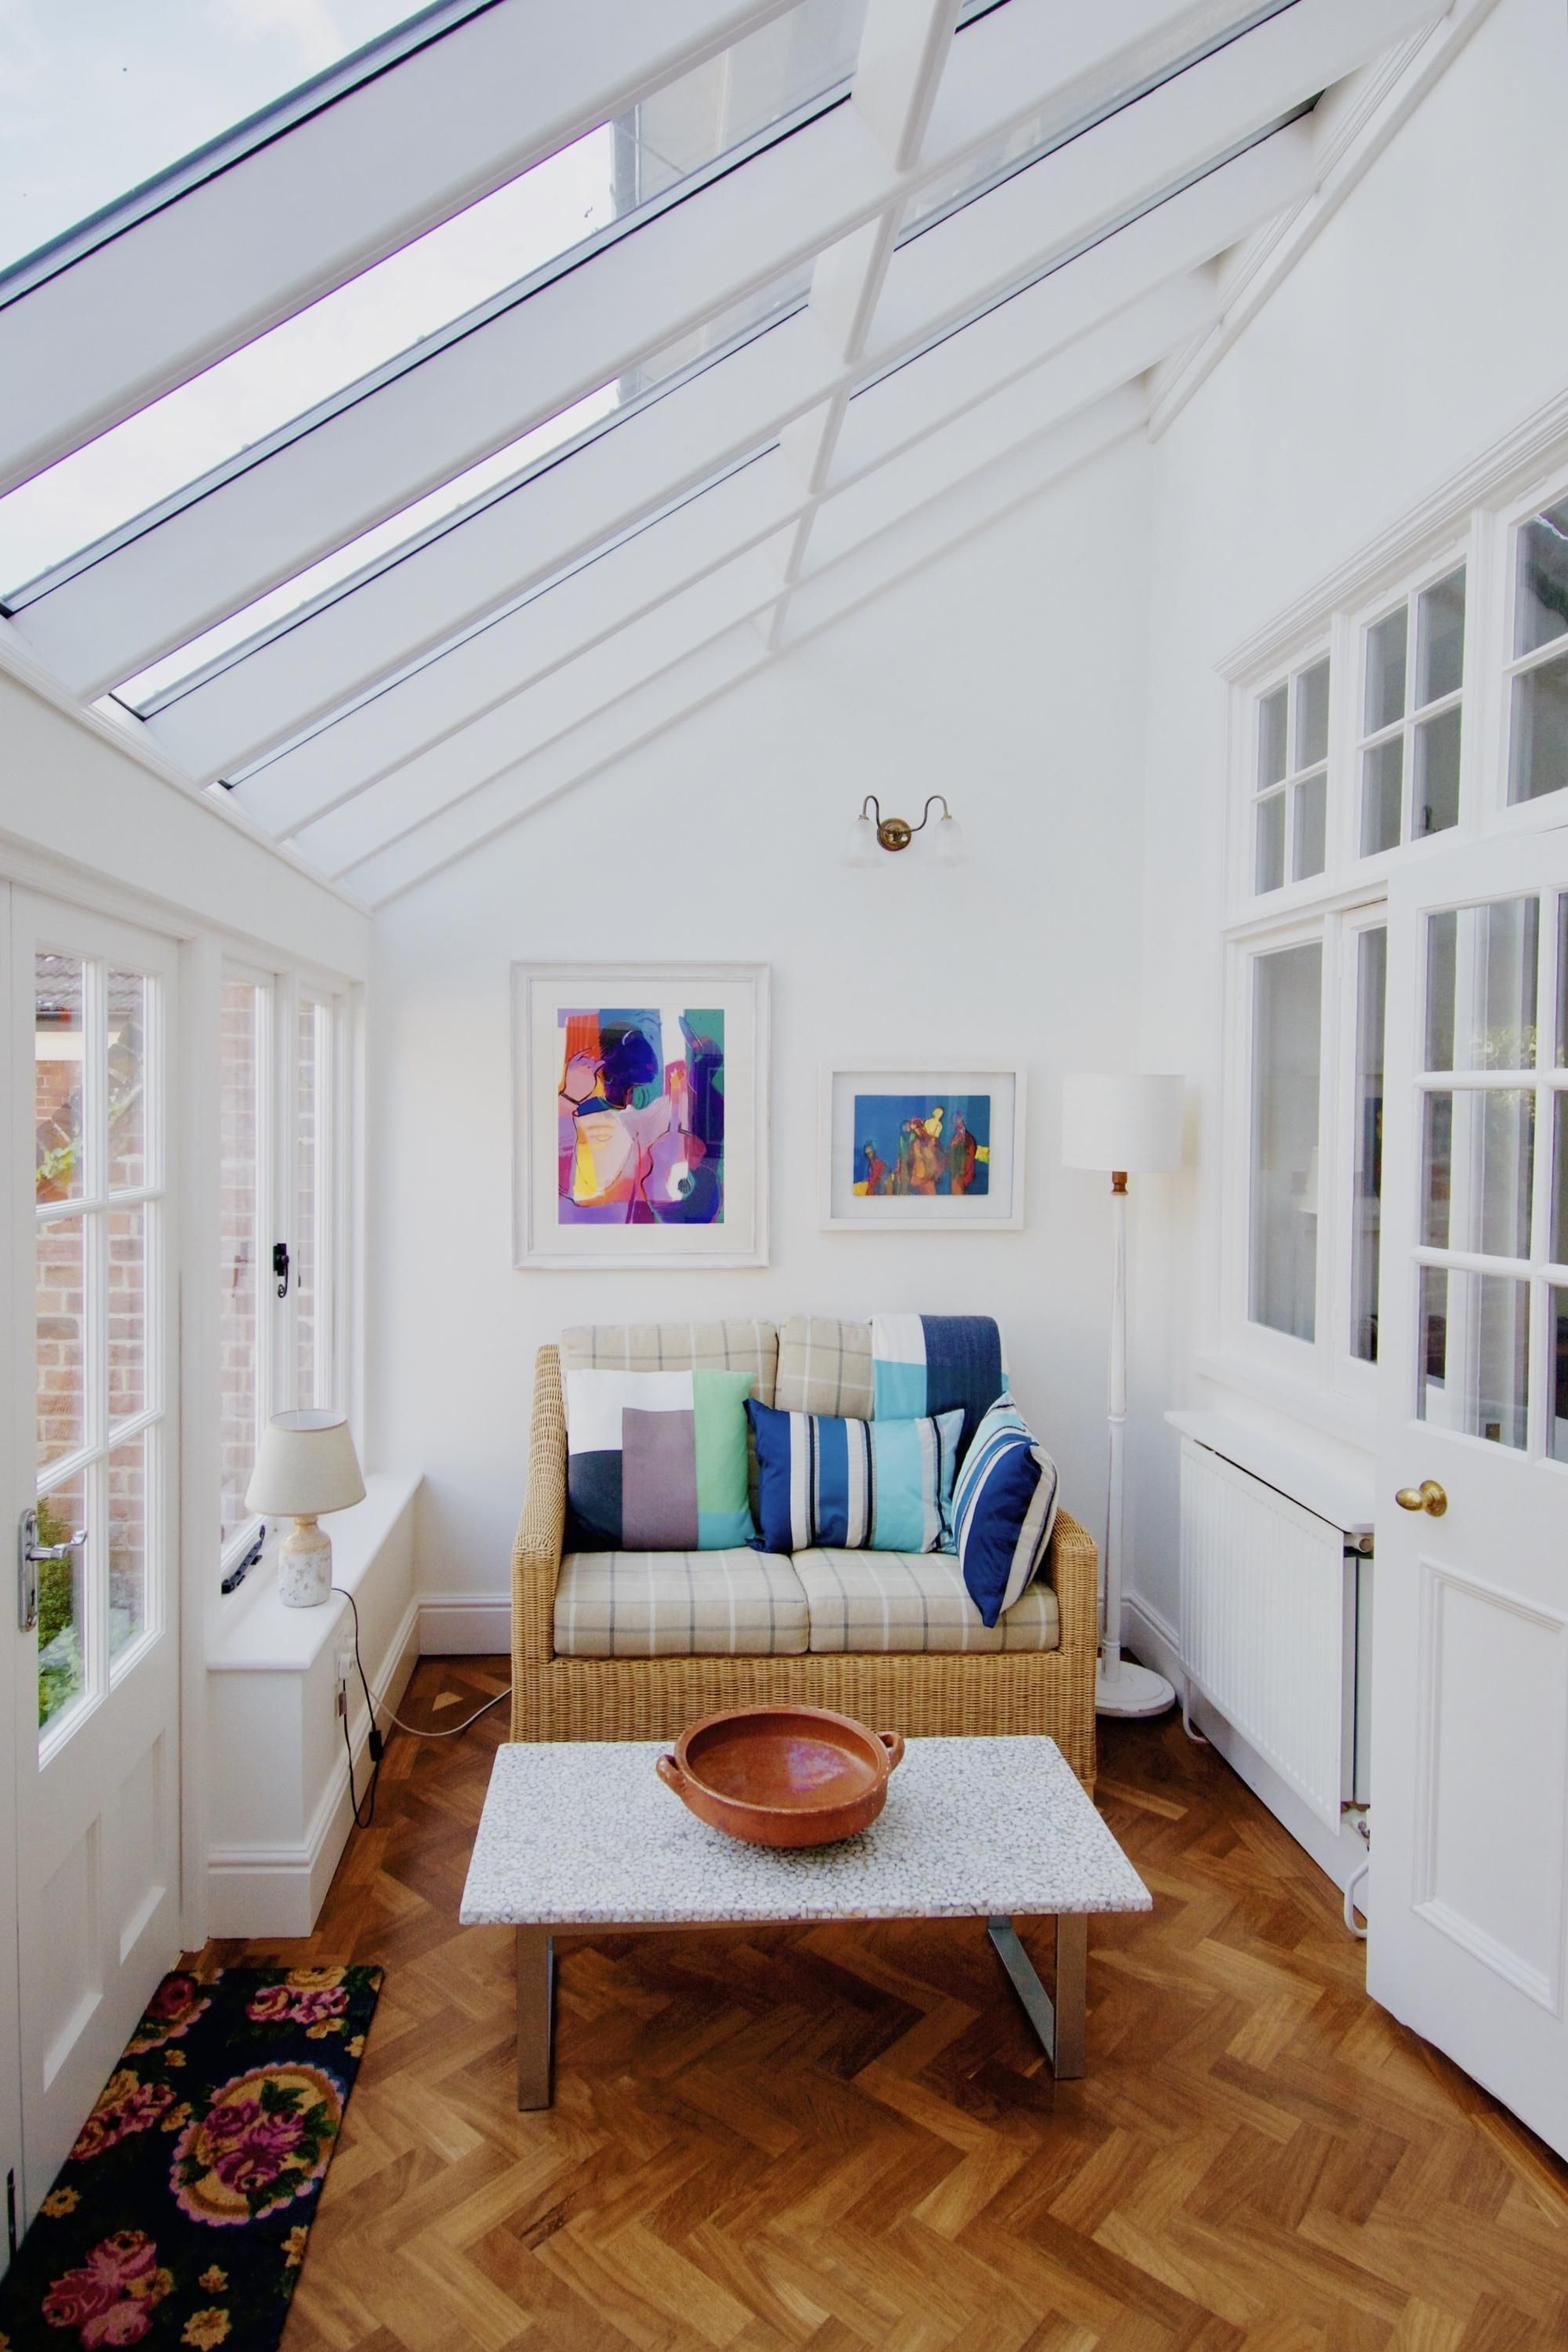 Conservatory Room Addition In The Uk 1040x1485 In 2020: This Small Sunroom At My Airbnb In England : CozyPlaces